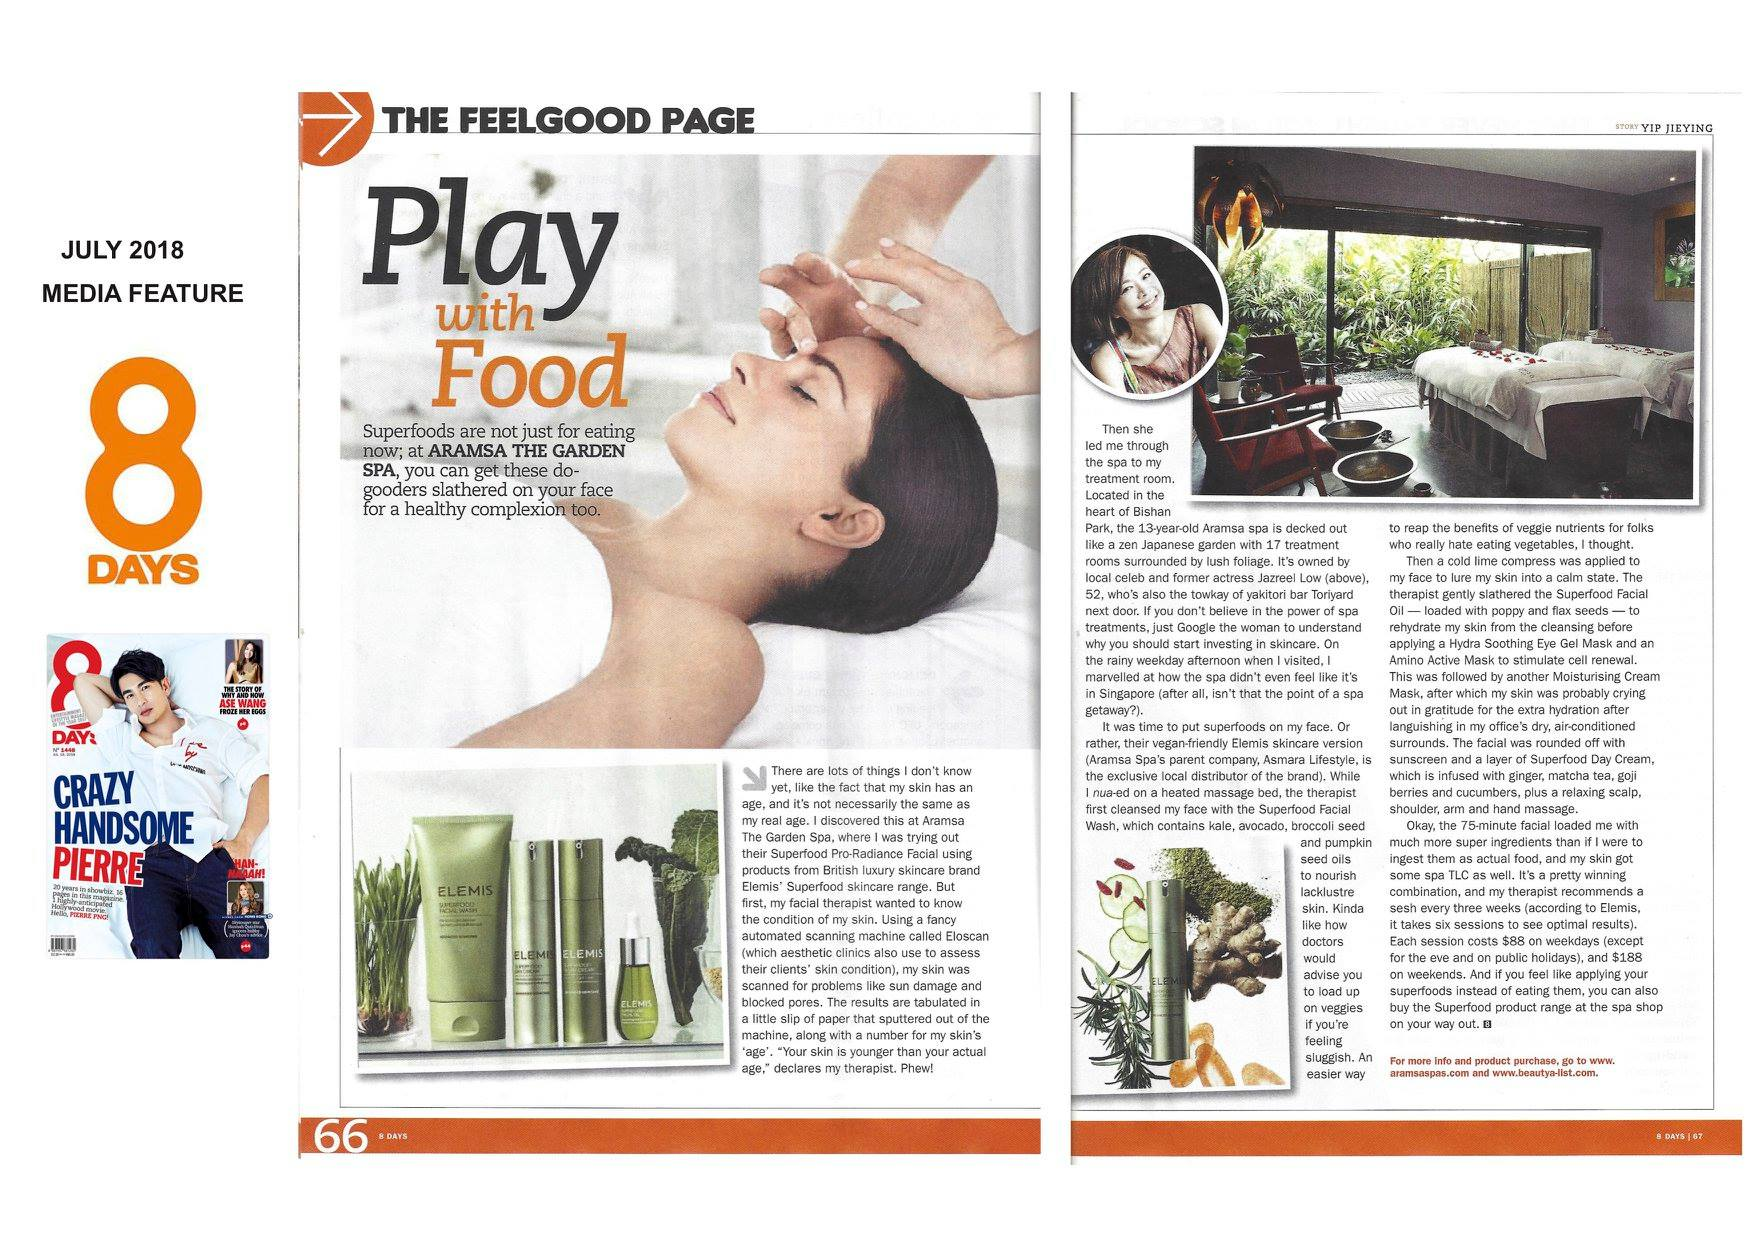 Click here to read the latest article about Elemis Superfood Facial experience, as well as the full range of Superfood Skincare Collection.